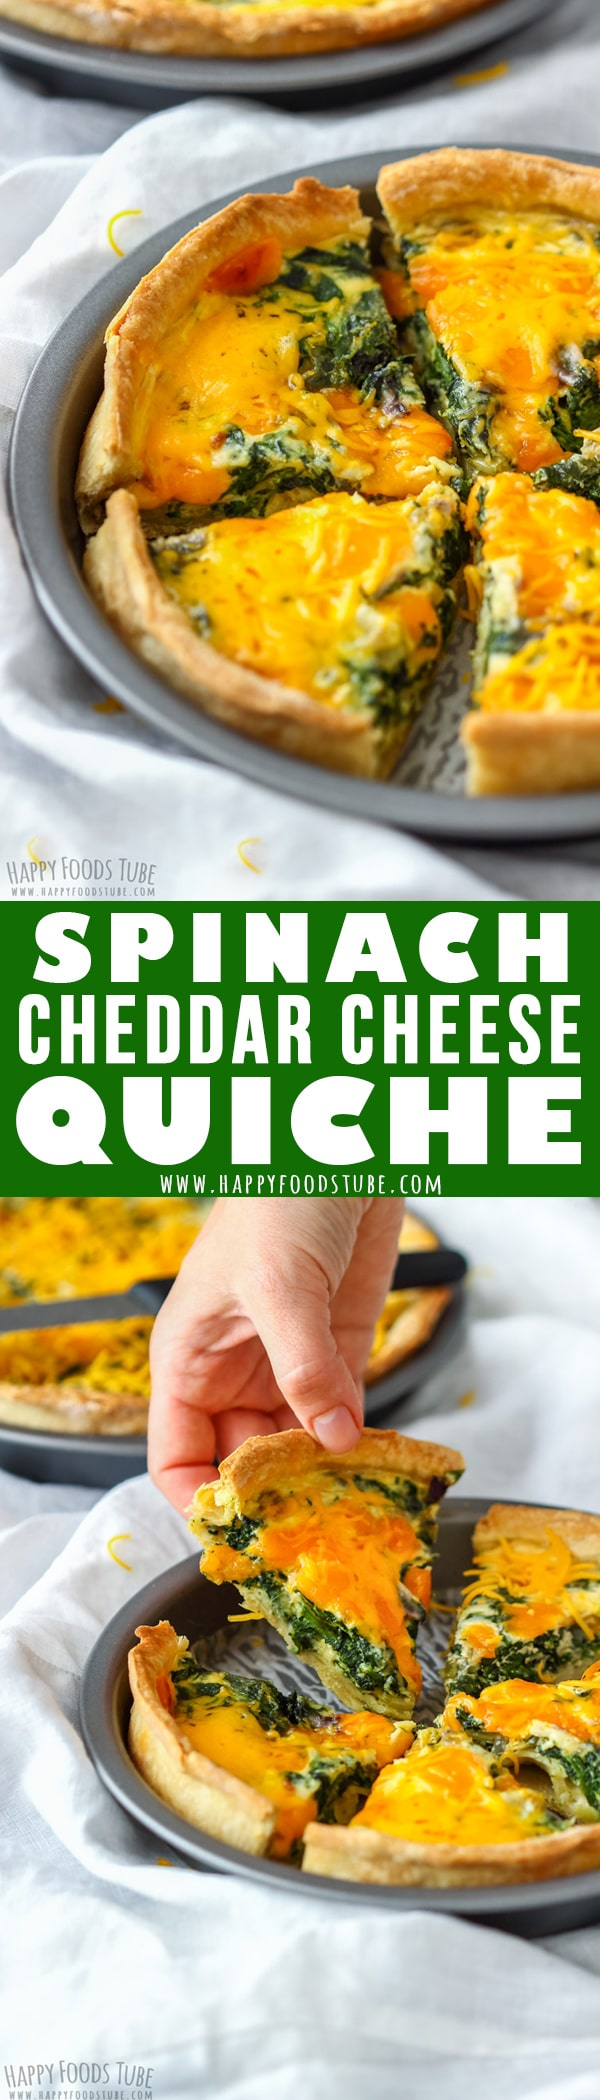 Spinach and Cheddar Quiche is a meat-free pie that can be served as appetizer as well as main dish. Perfect for breakfast, lunch or dinner. #quiche #vegetarian #spinach #cheddar #cheese #howtomake #homemade #recipe #french #food #cooking #crust #breakfast #lunch #dinner #meatless #meatfree